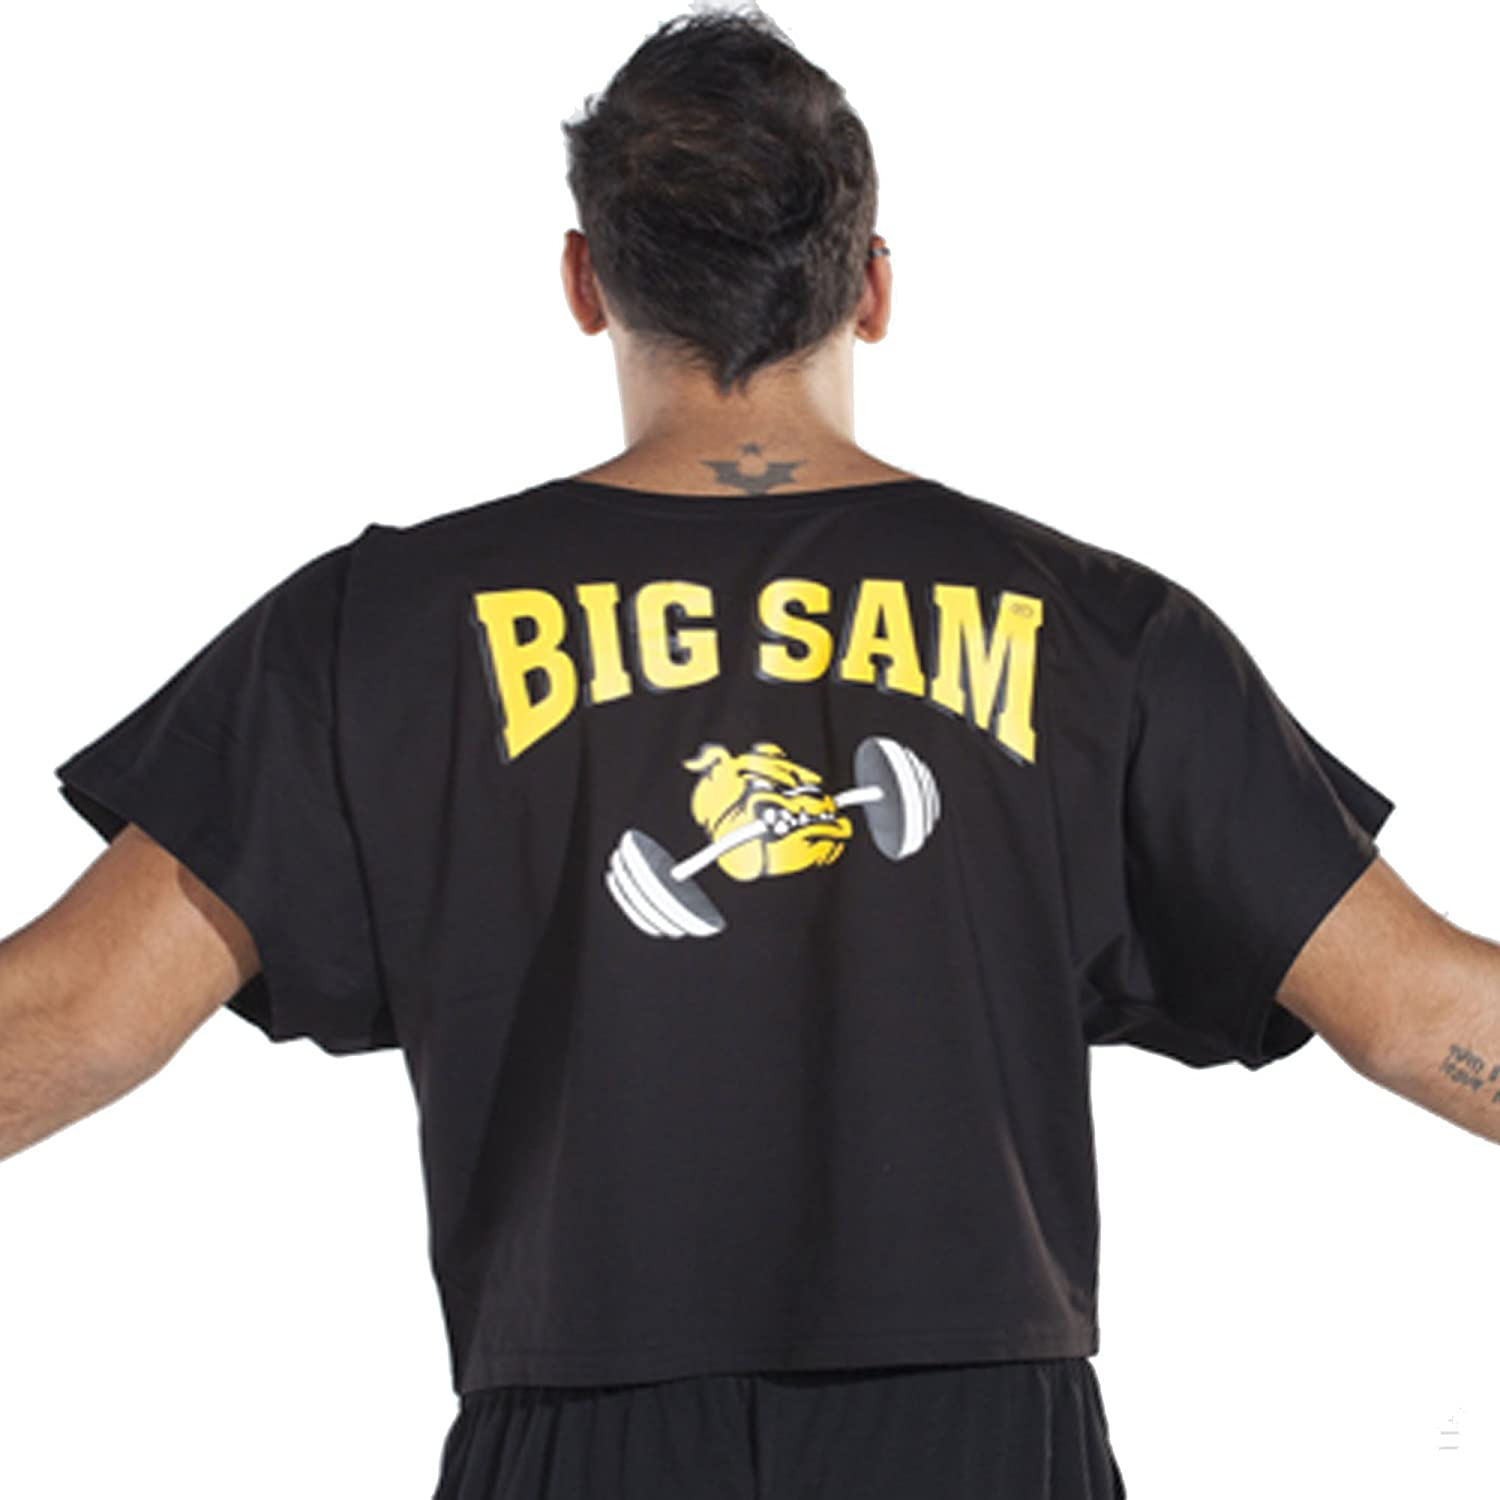 BIG SM EXTREME SPORTSWEAR Herren Ragtop Rag Top Sweater T-Shirt Bodybuilding 3082